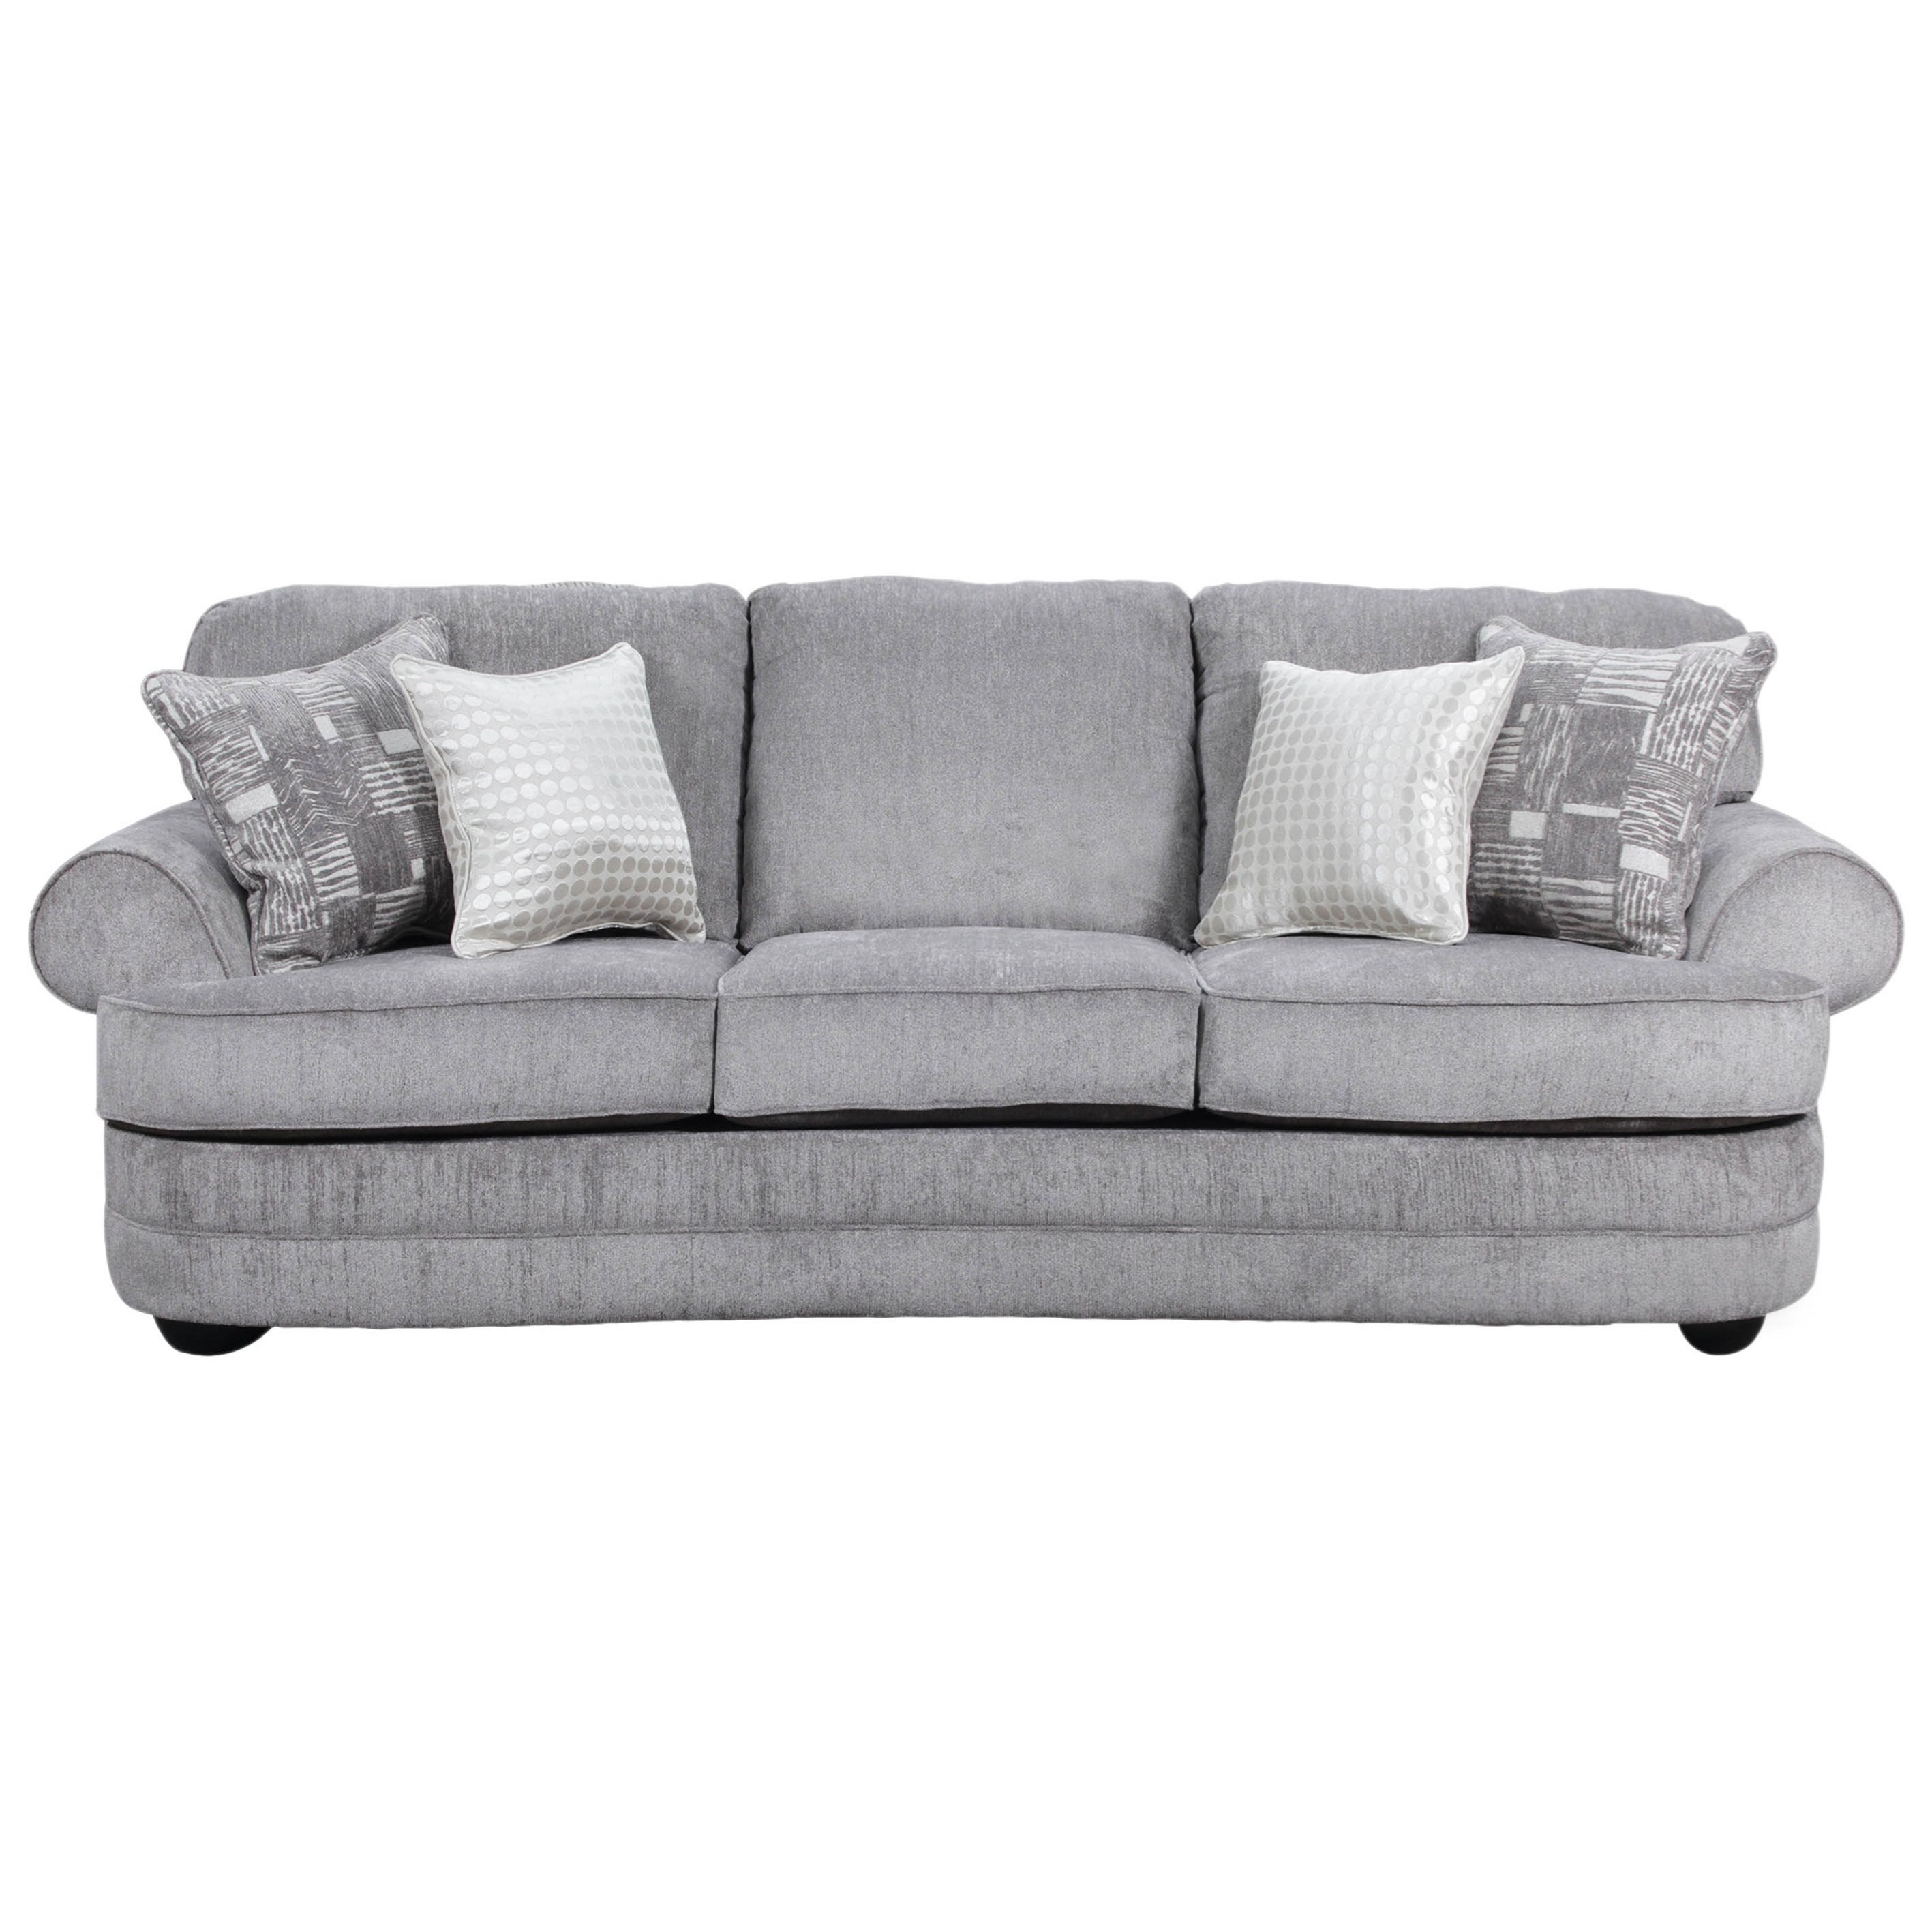 Sectional Sofas Birmingham Al: Simmons Upholstery 9255BR Transitional Sofa